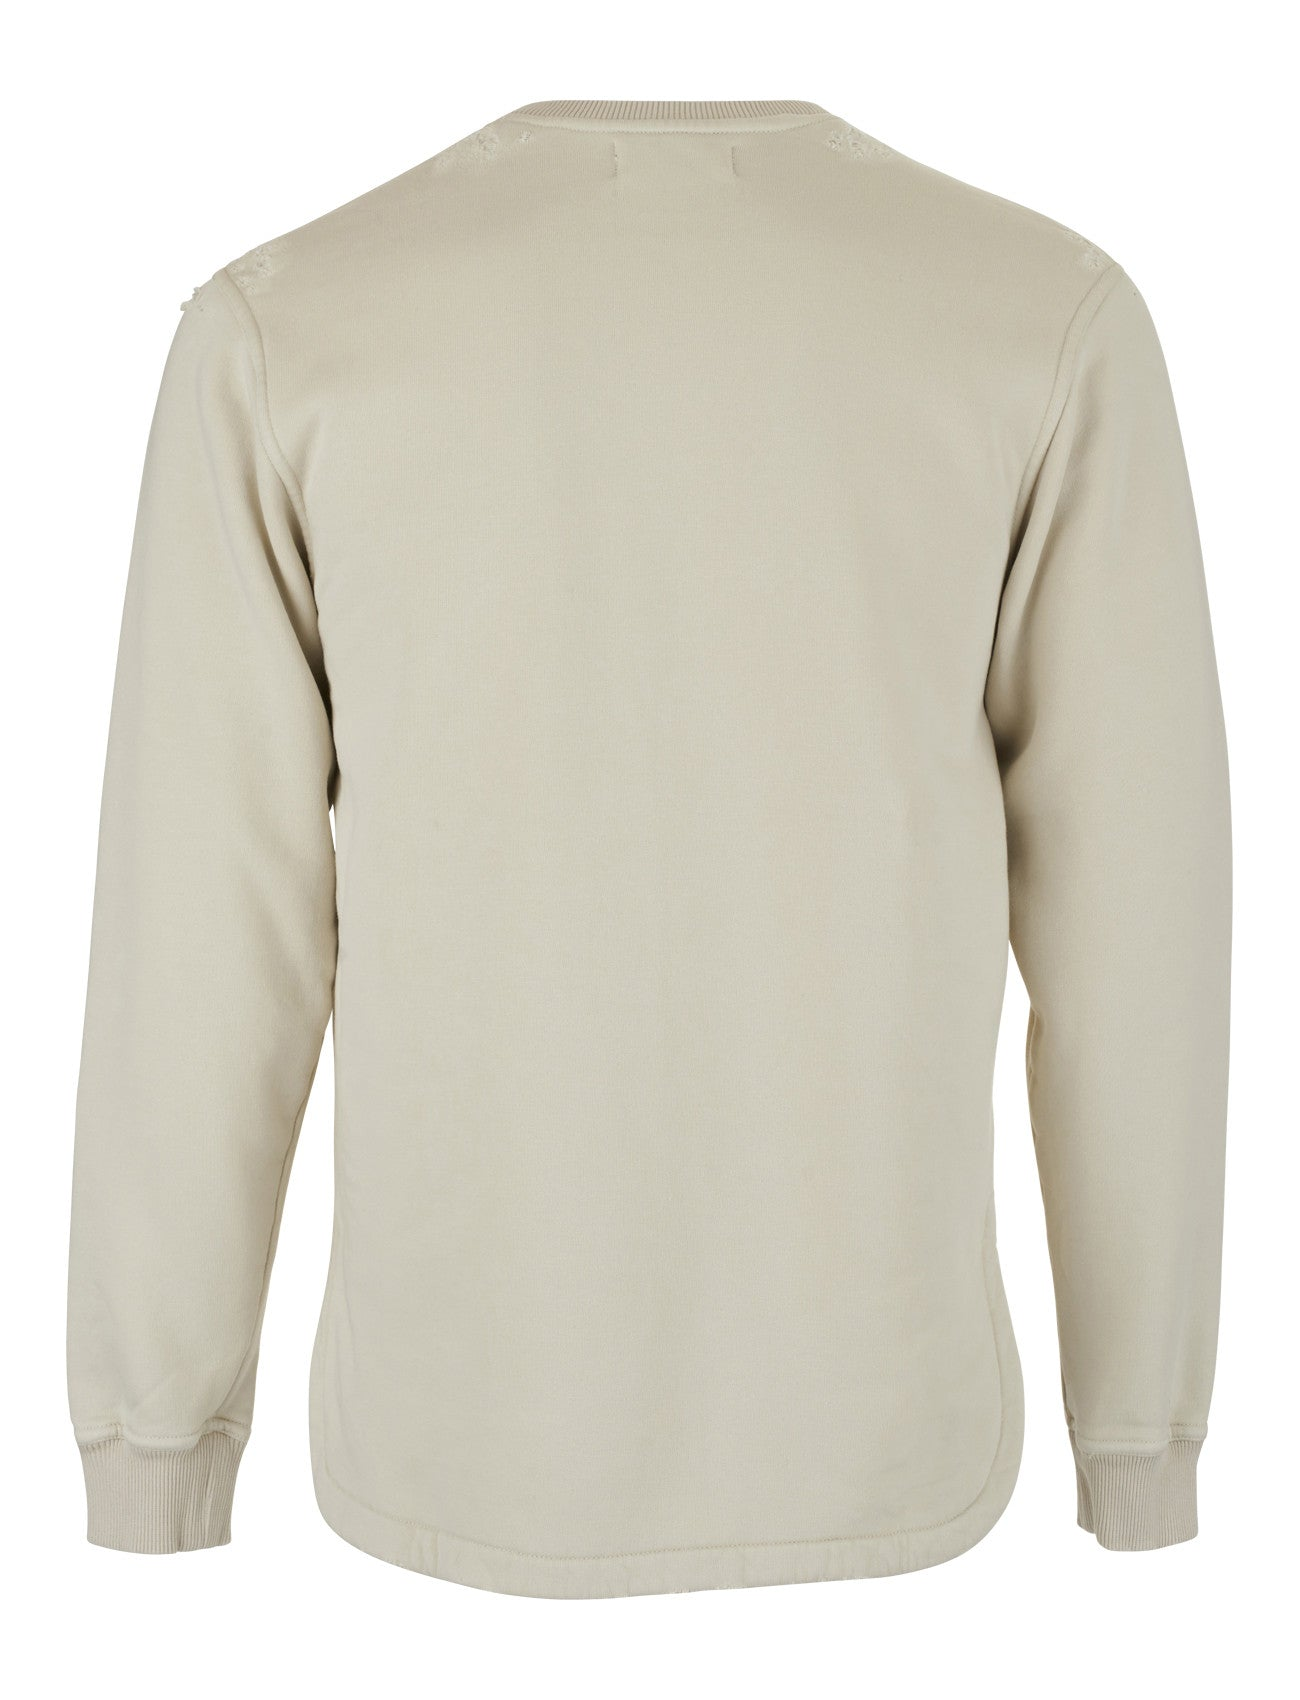 Distressed Crewneck - Desert